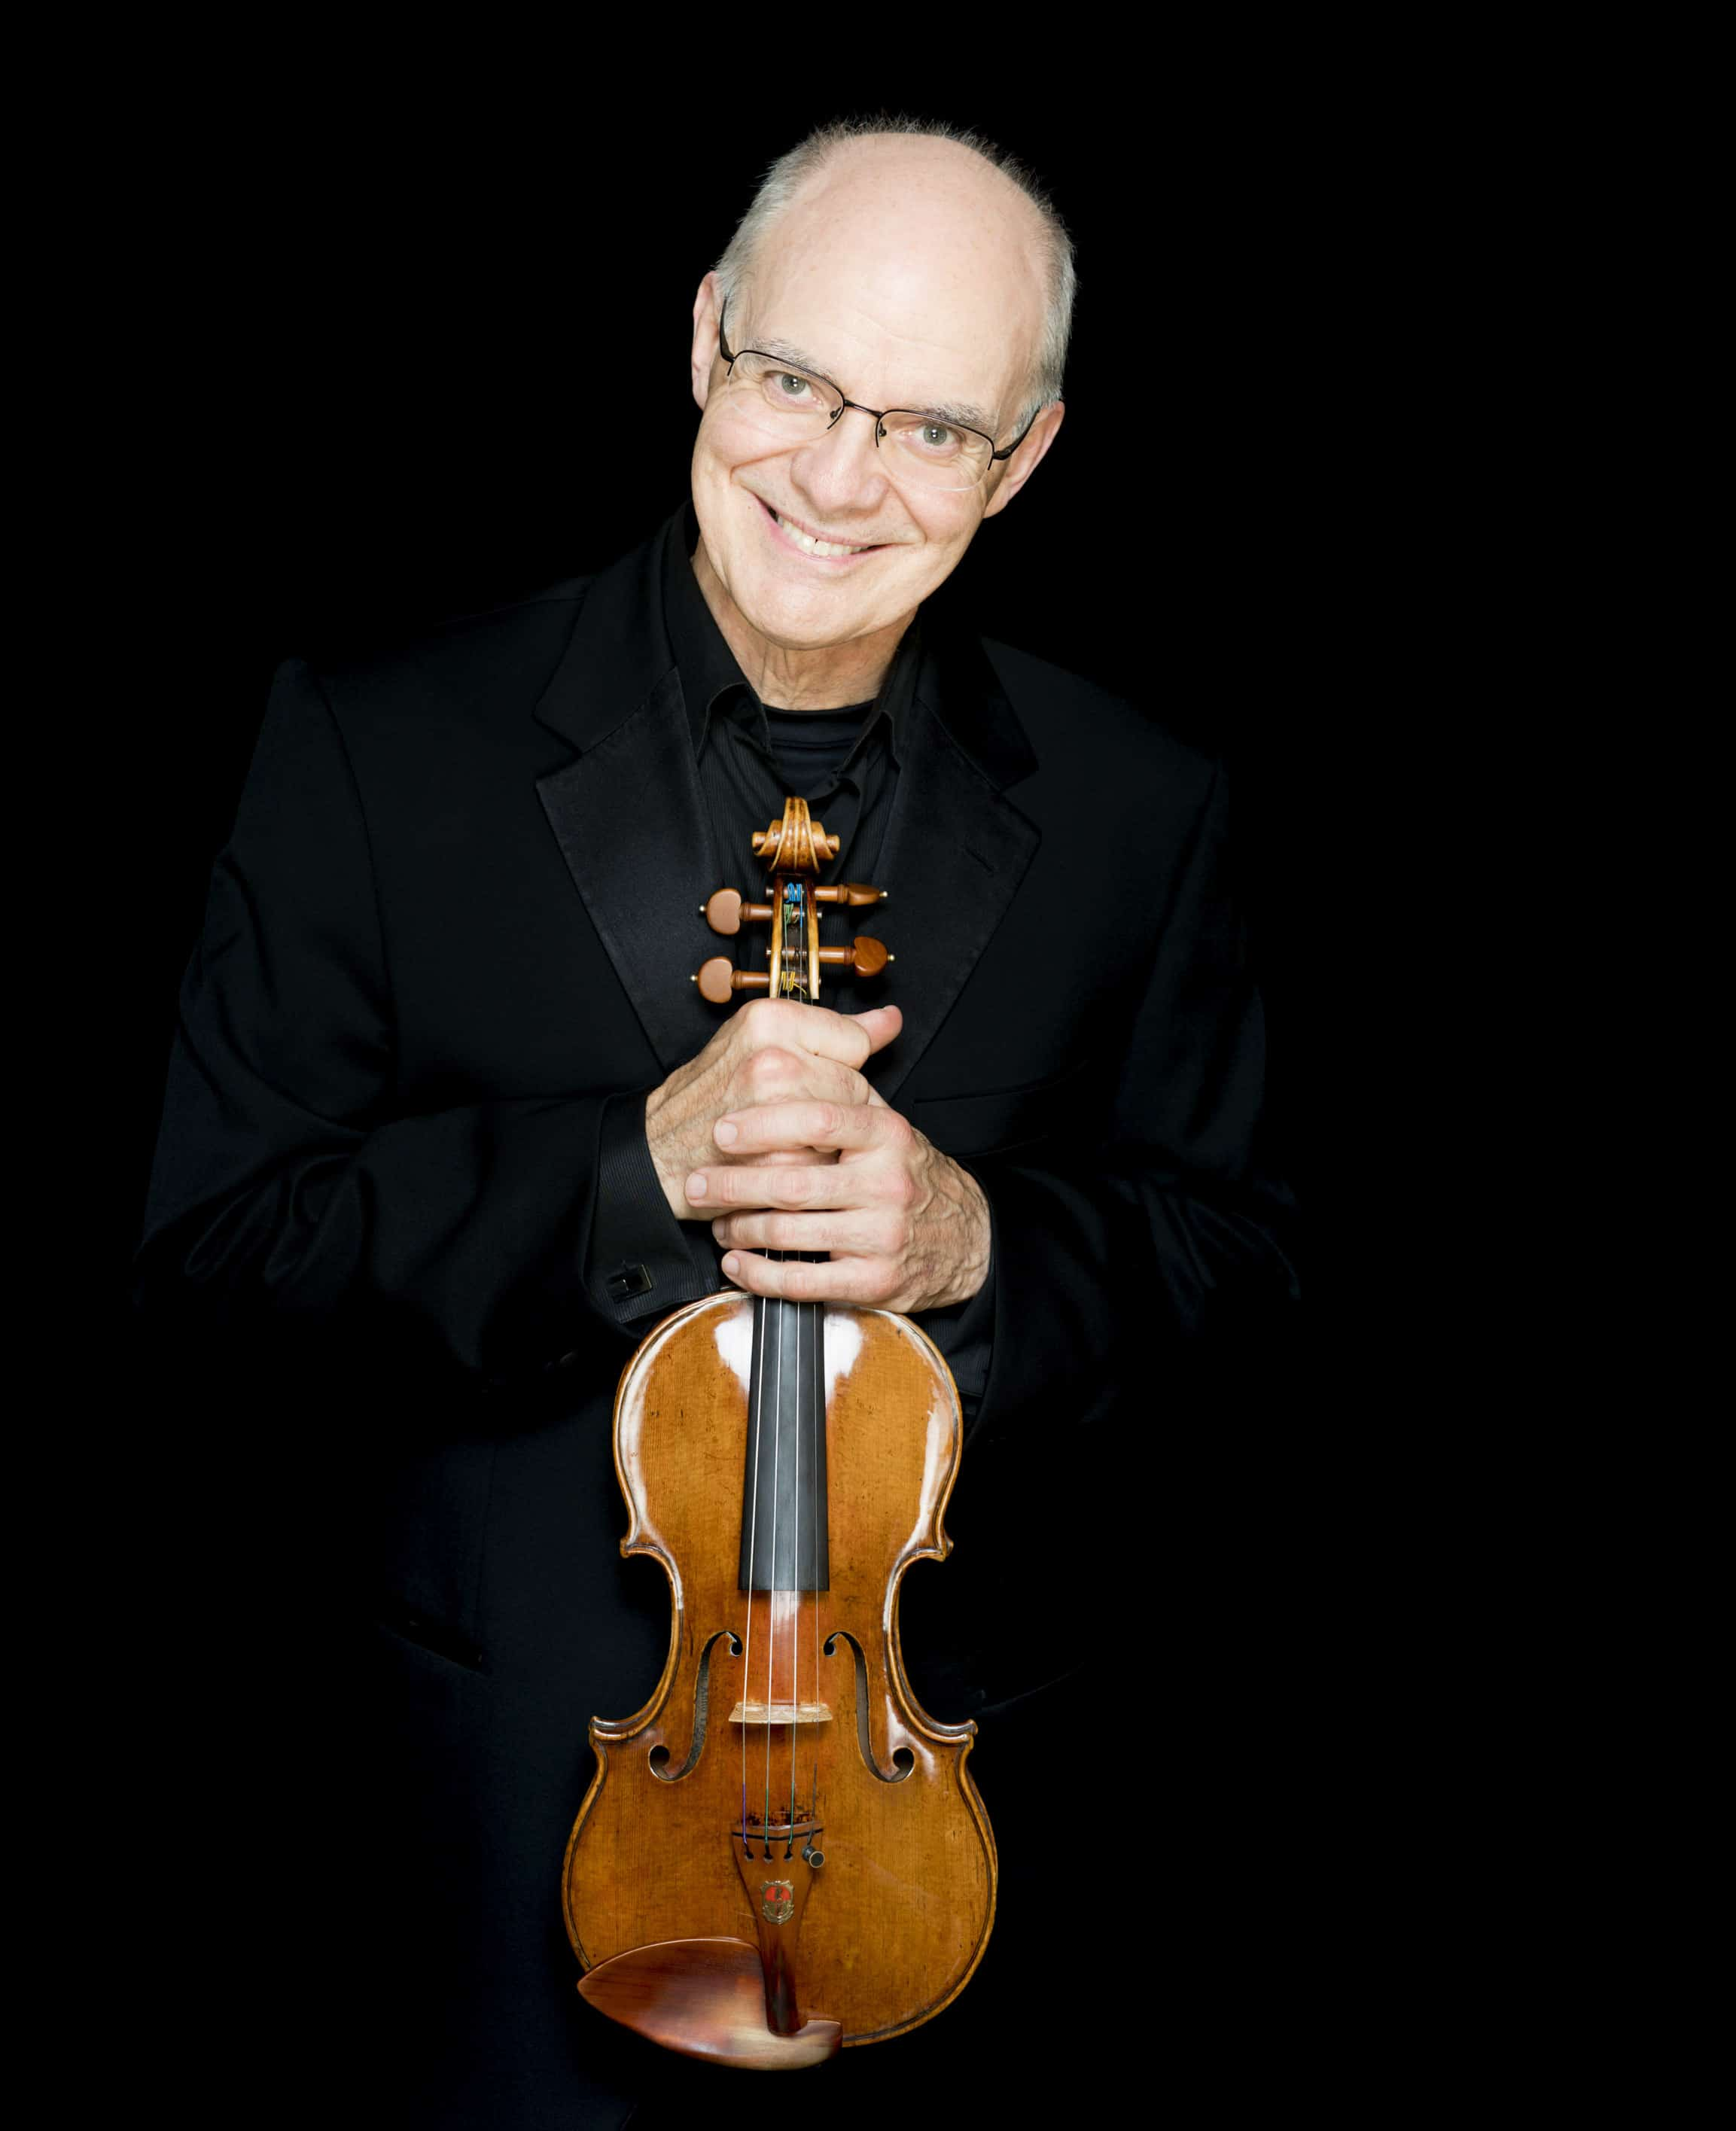 Boston's concertmaster is on the mend